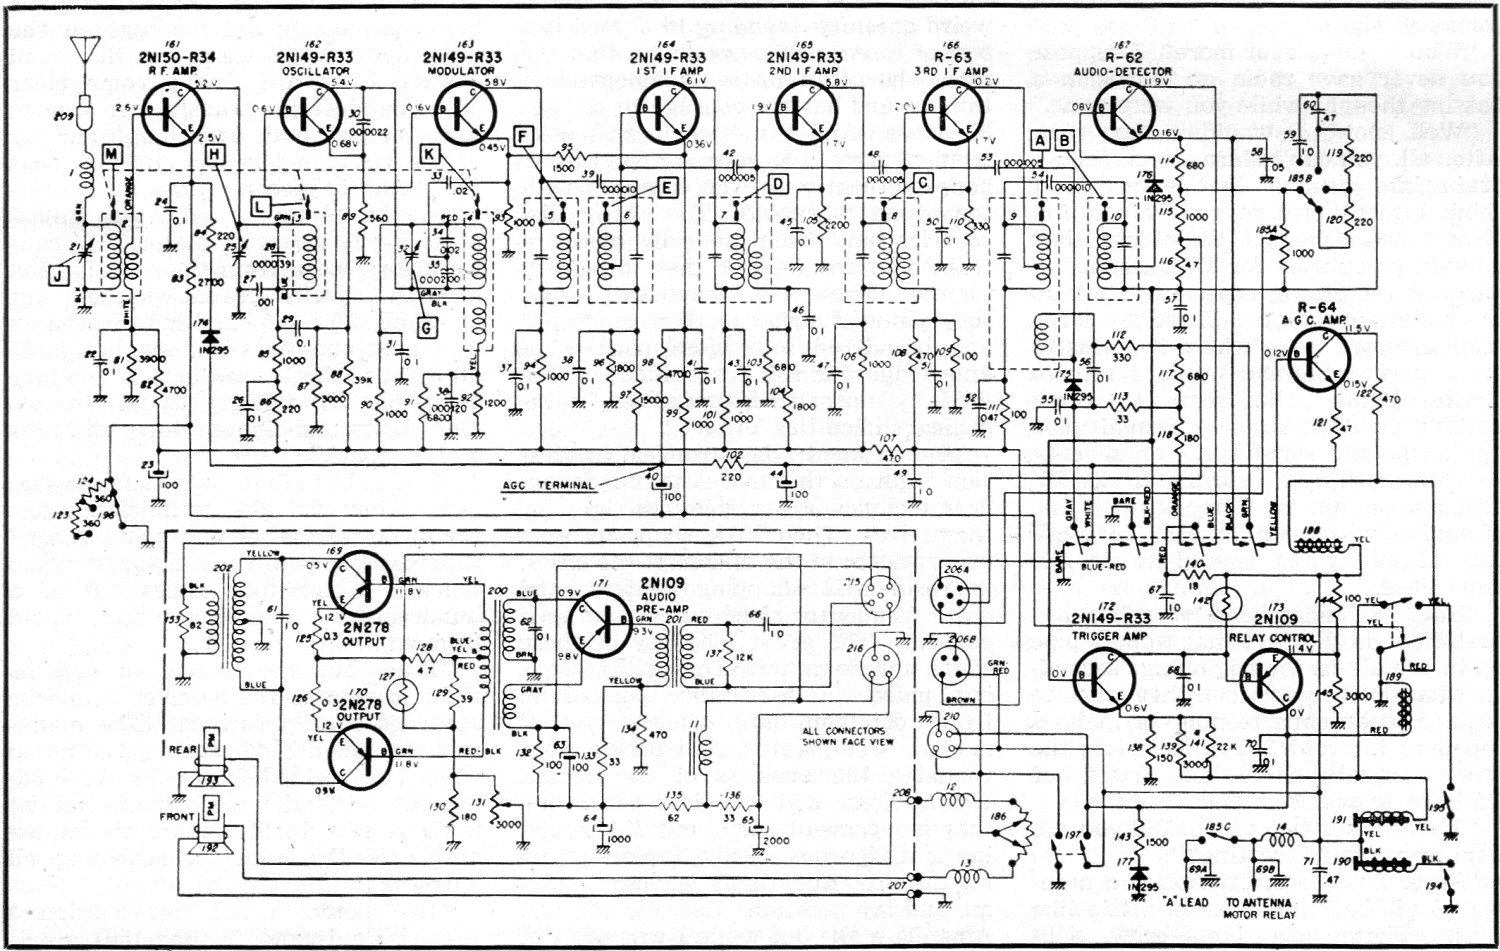 tv jammer diagram wiring diagrams pictures wiring